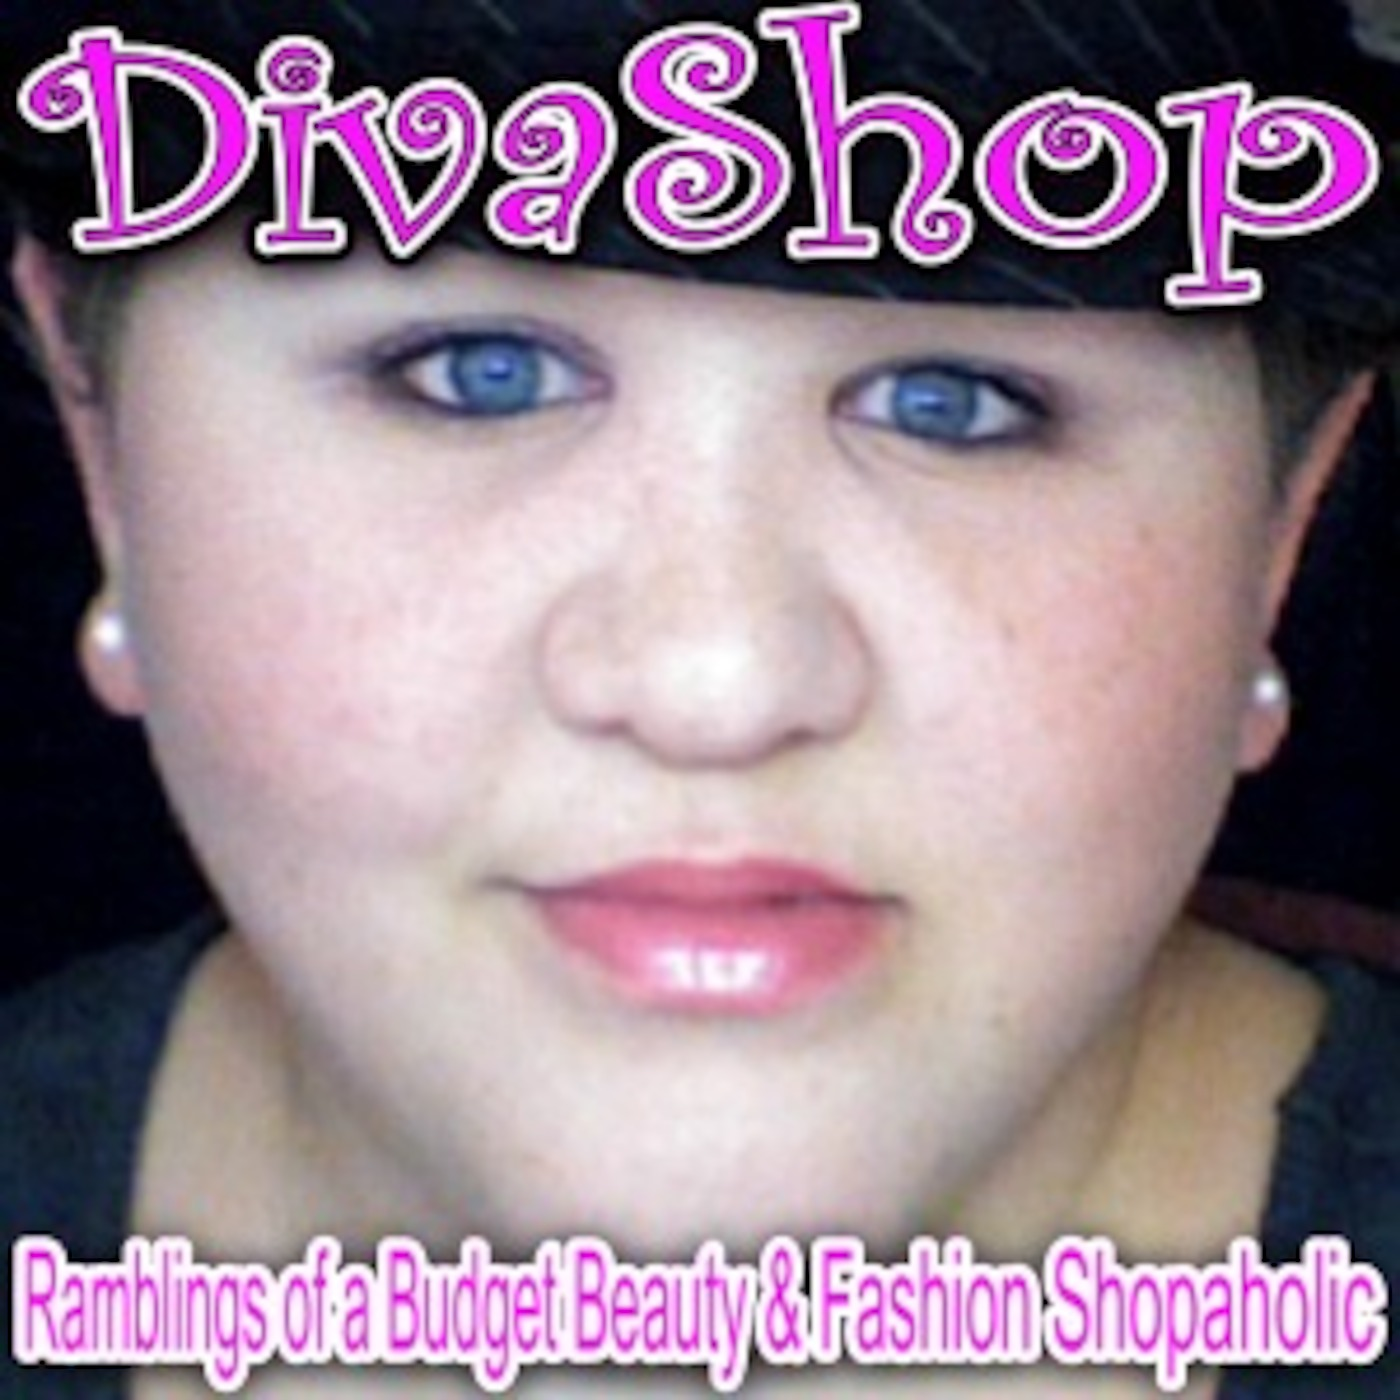 DivaShop Podcast